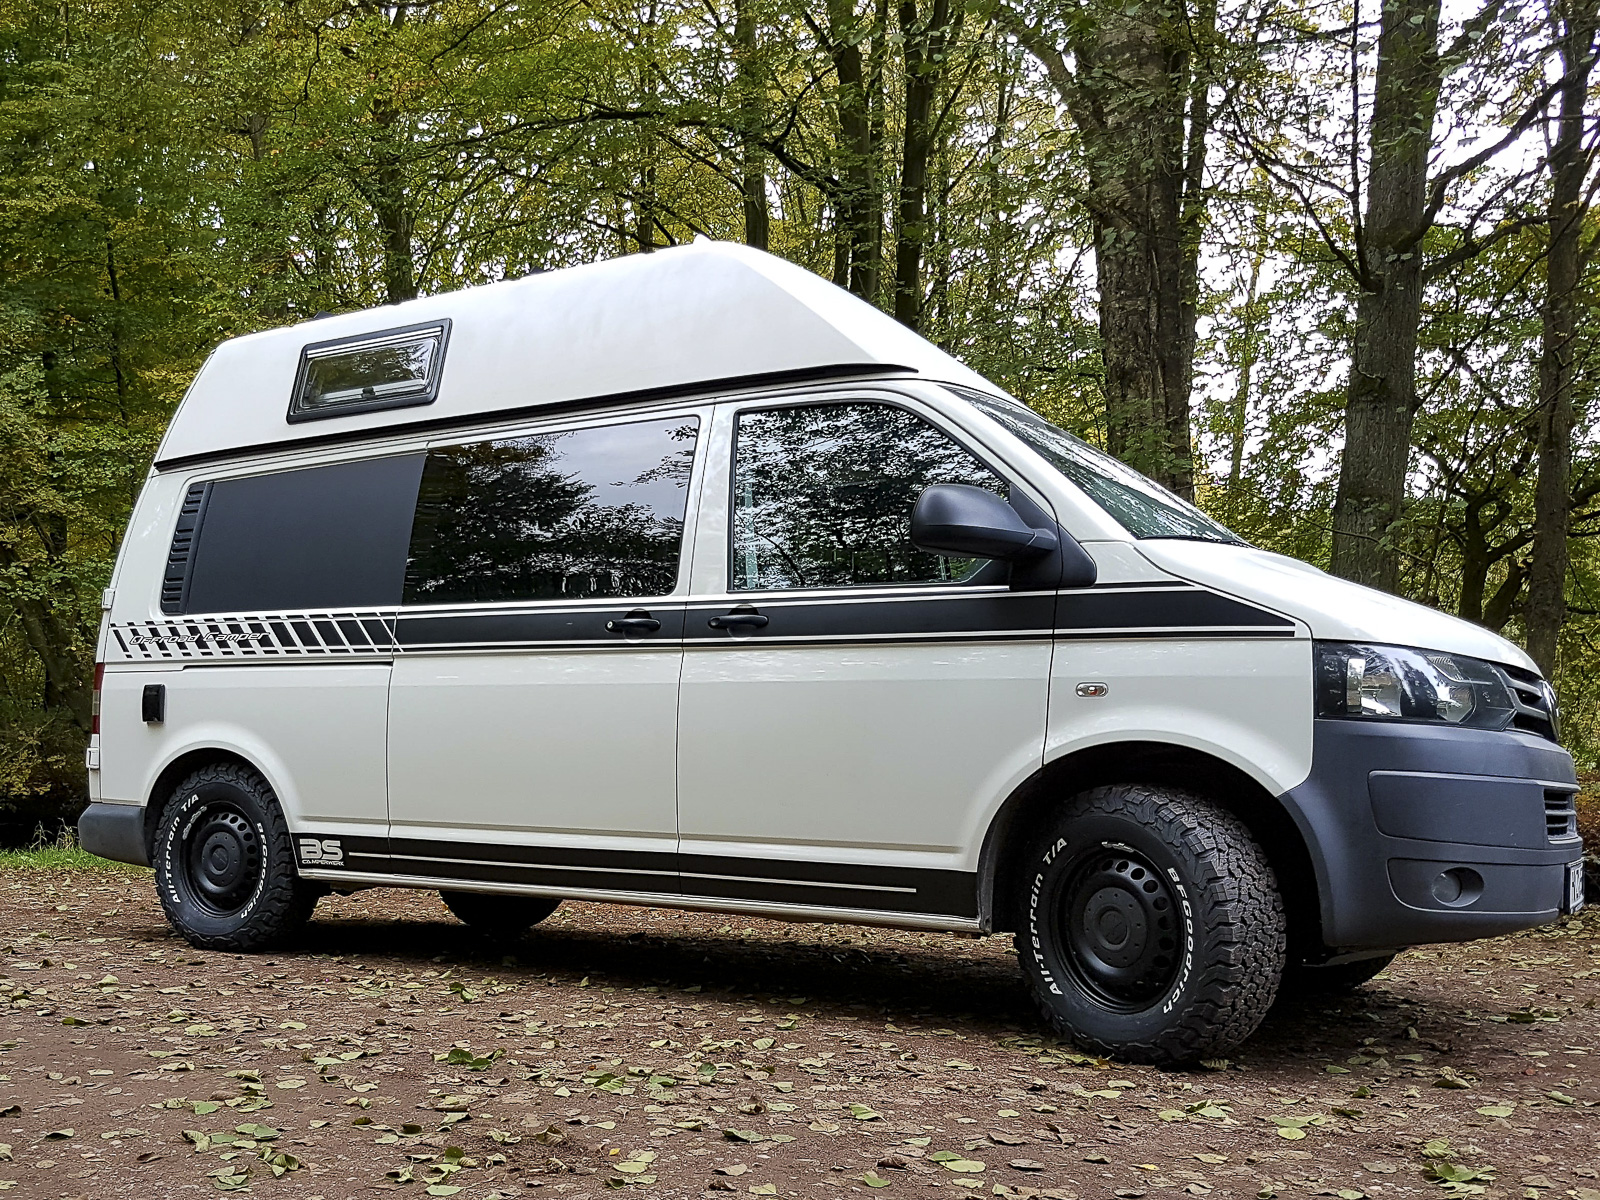 galerie vw t5 offroad premium mit hochdach bs camperwerk. Black Bedroom Furniture Sets. Home Design Ideas